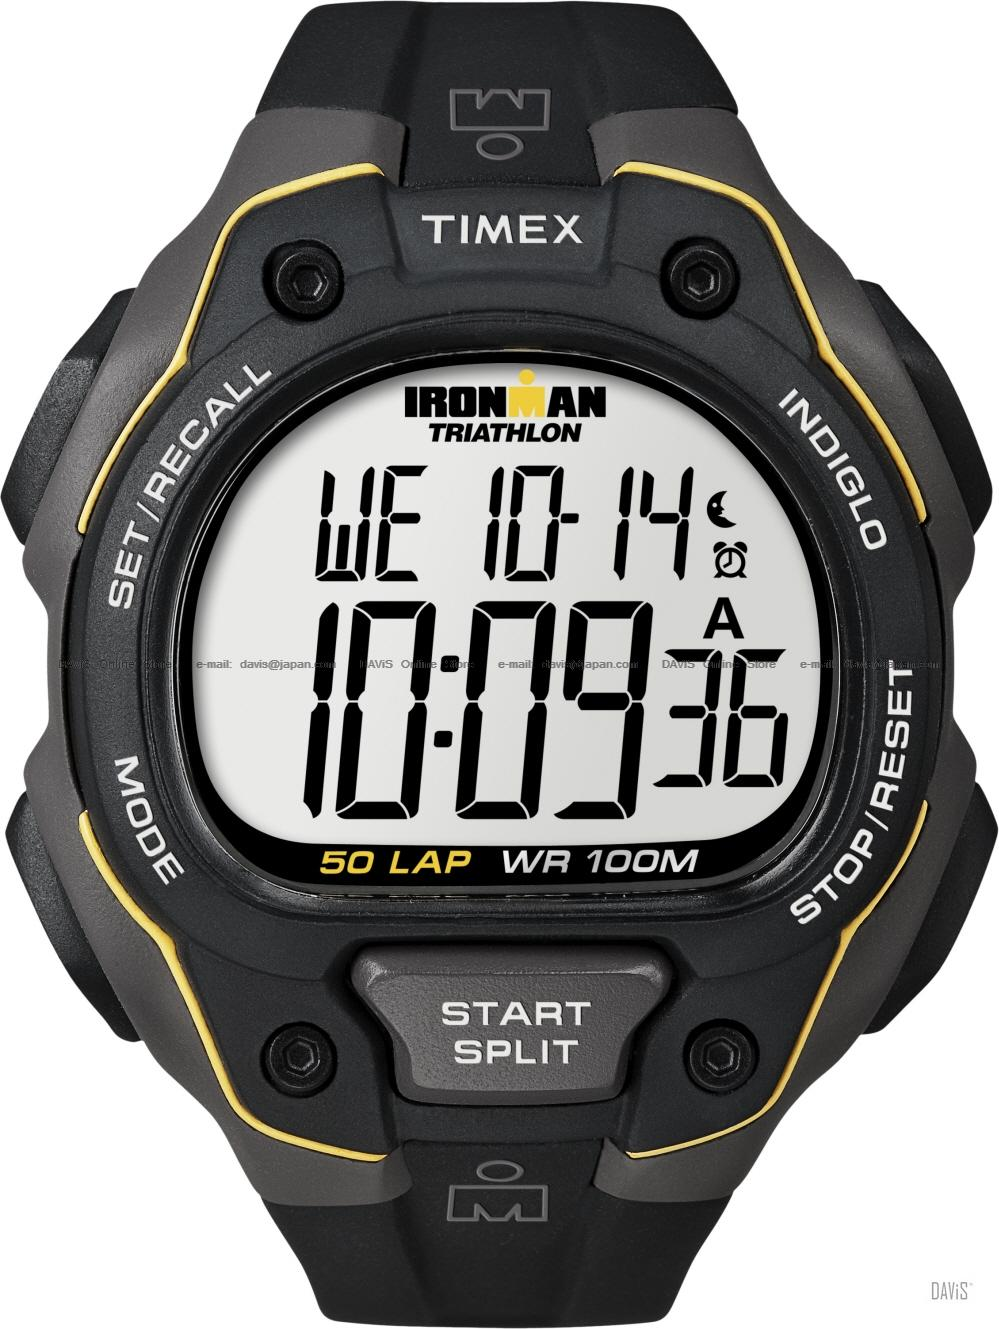 TIMEX T5K494 (M) IRONMAN Triathlon 50-Lap resin strap black yellow